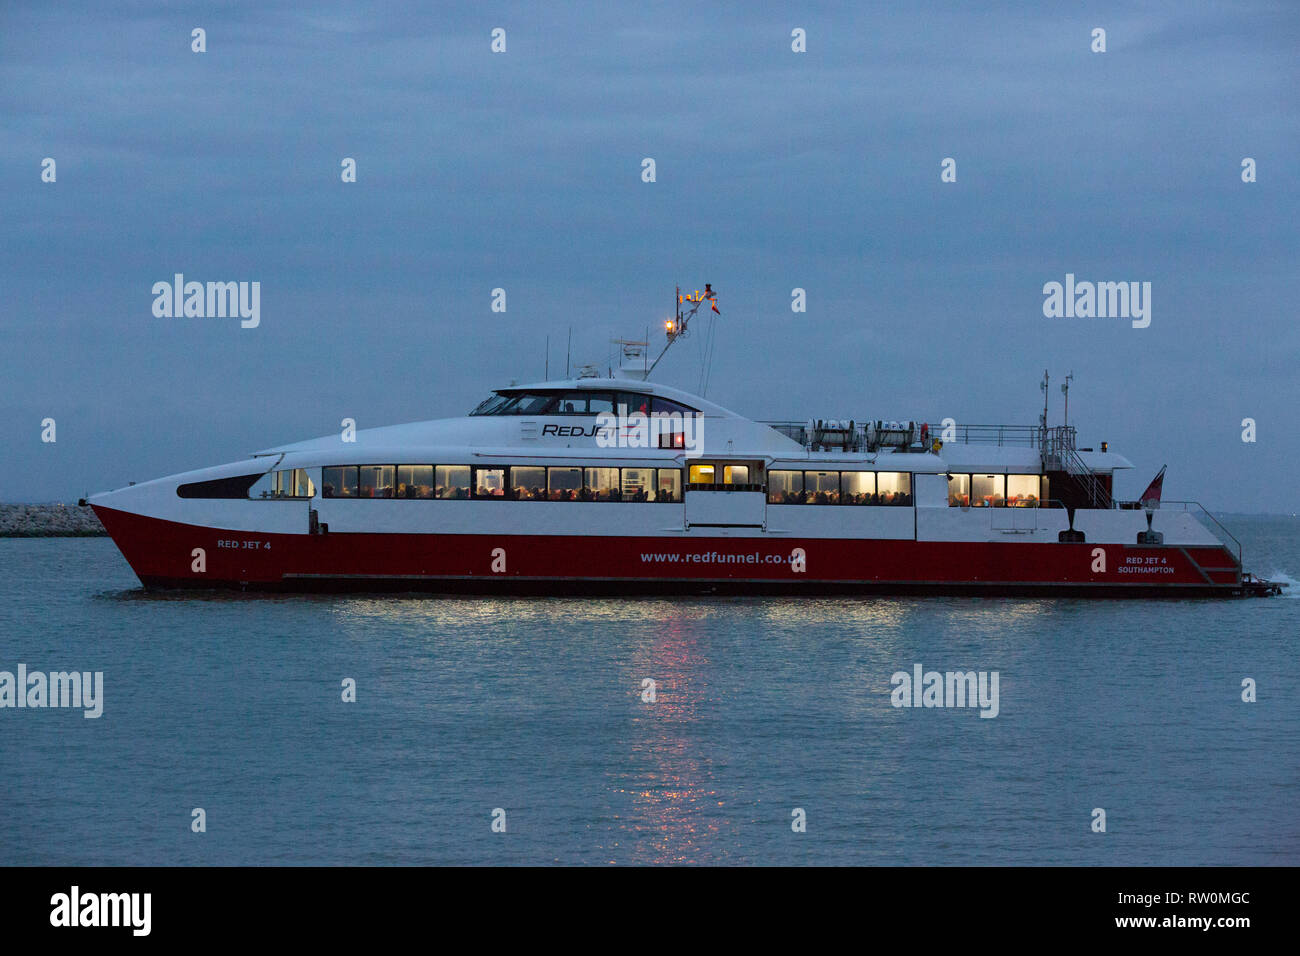 Passenger,ferry, Red,Funnel,Jet,4, Cowes,Southampton,fast,dusk,commute,commuter,Isle of Wight,England,UK, - Stock Image